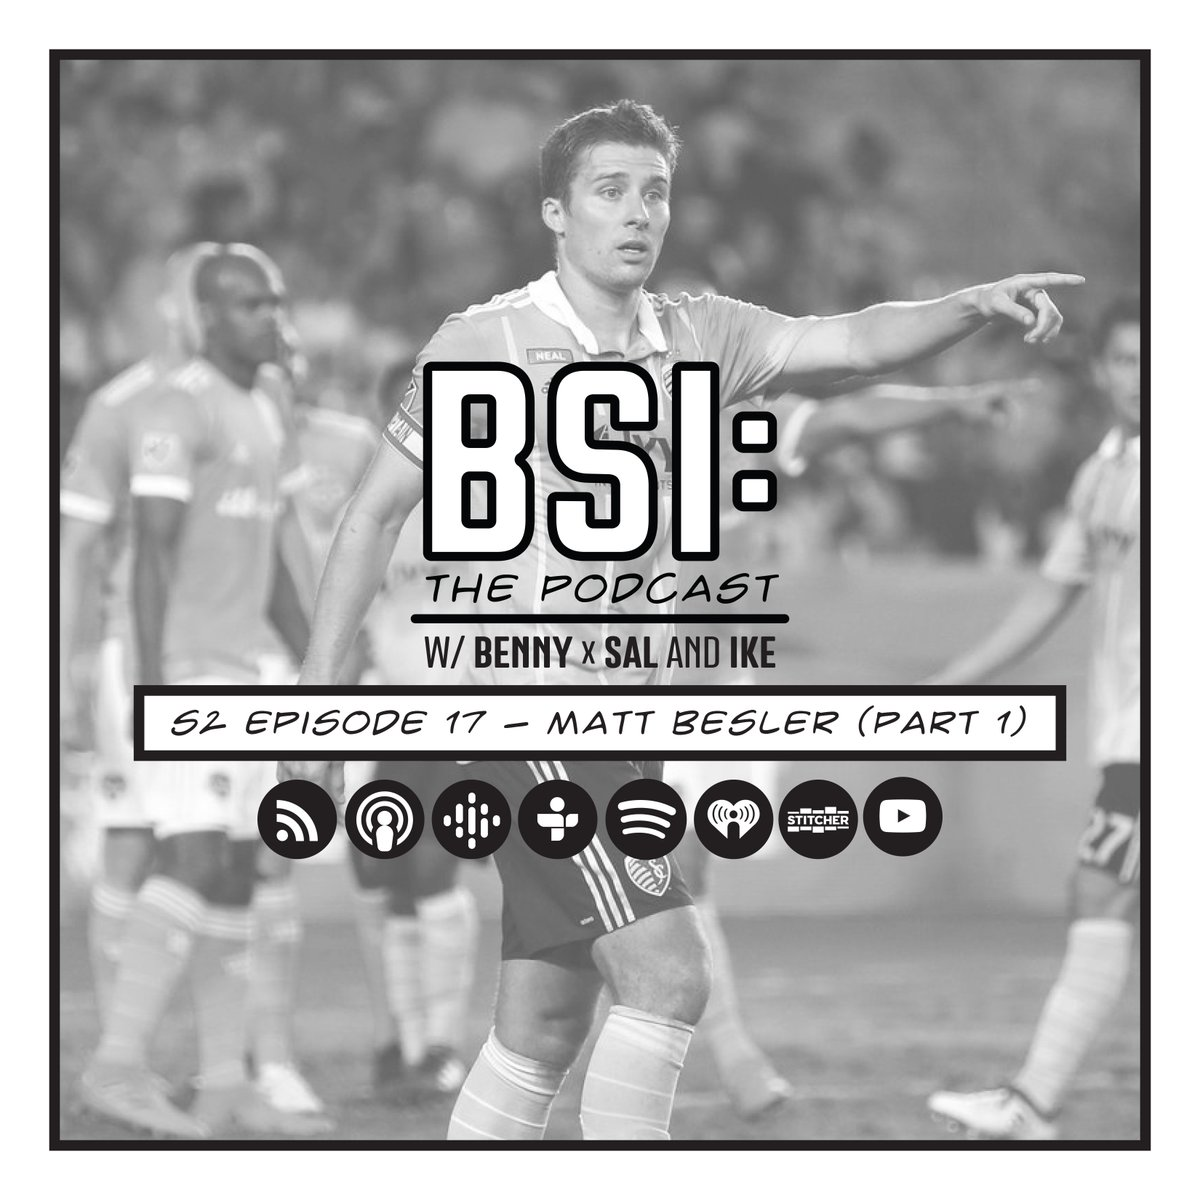 🚨 NEW EPISODE🎙S2 E17 | Matt Besler (PART 1) 🔗https://t.co/eAaGAuxXWl  🗣@MattBesler  joins the gang to talk about his early days in @SportingKC, the ups and downs with the @USMNT, and who he almost got traded to in @MLS. https://t.co/SO9Azg8pWI